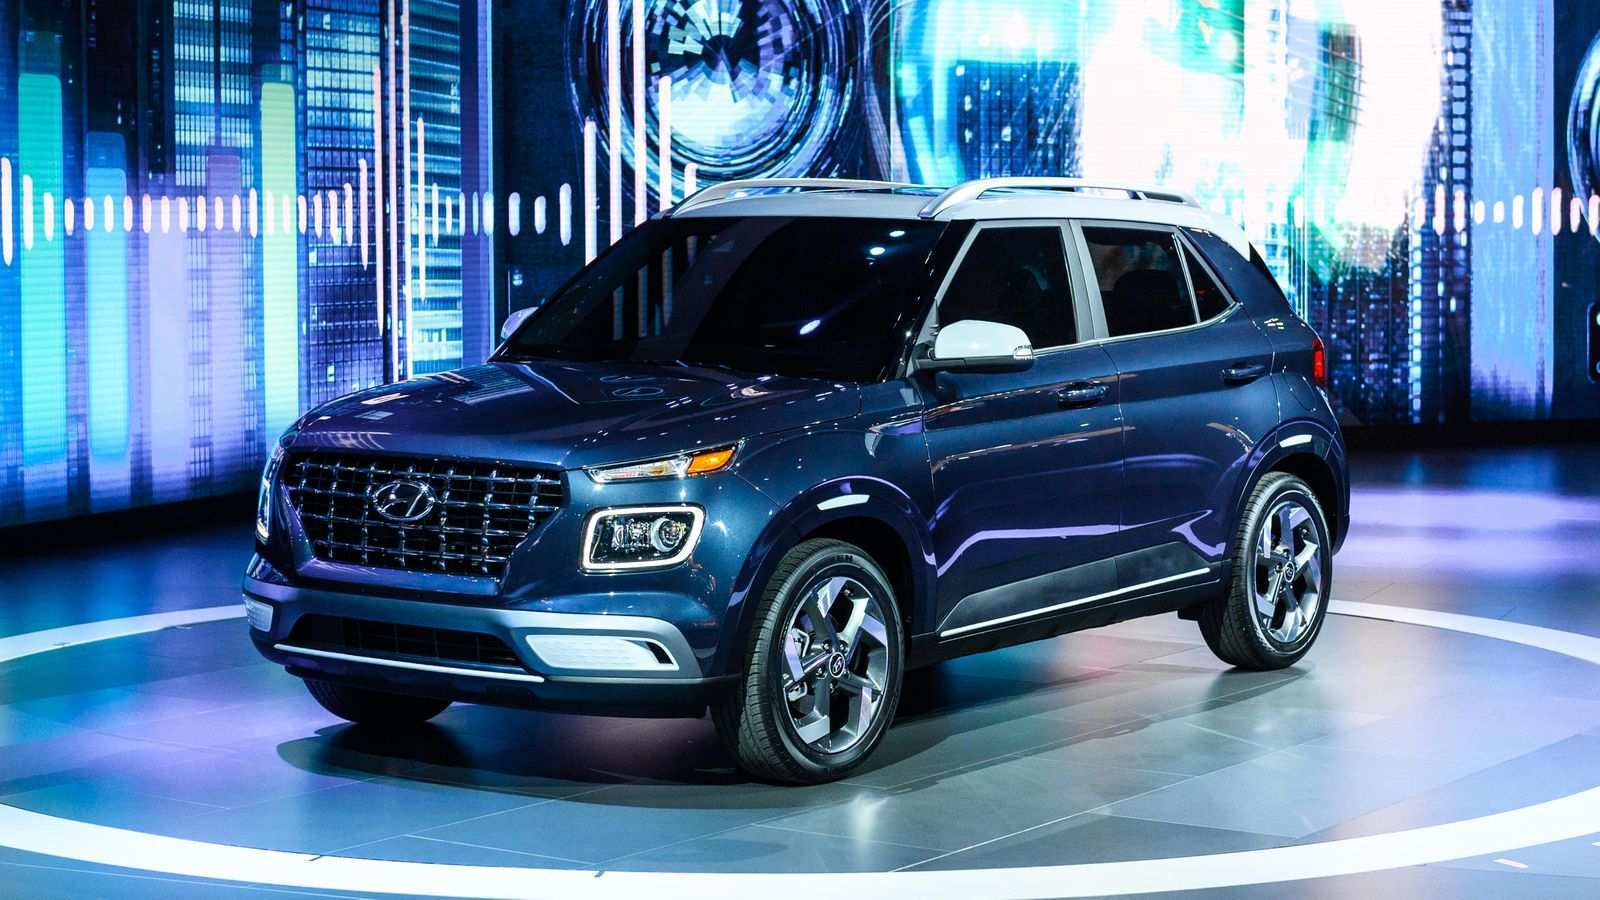 99 The Best When Do 2020 Hyundai Cars Come Out Model